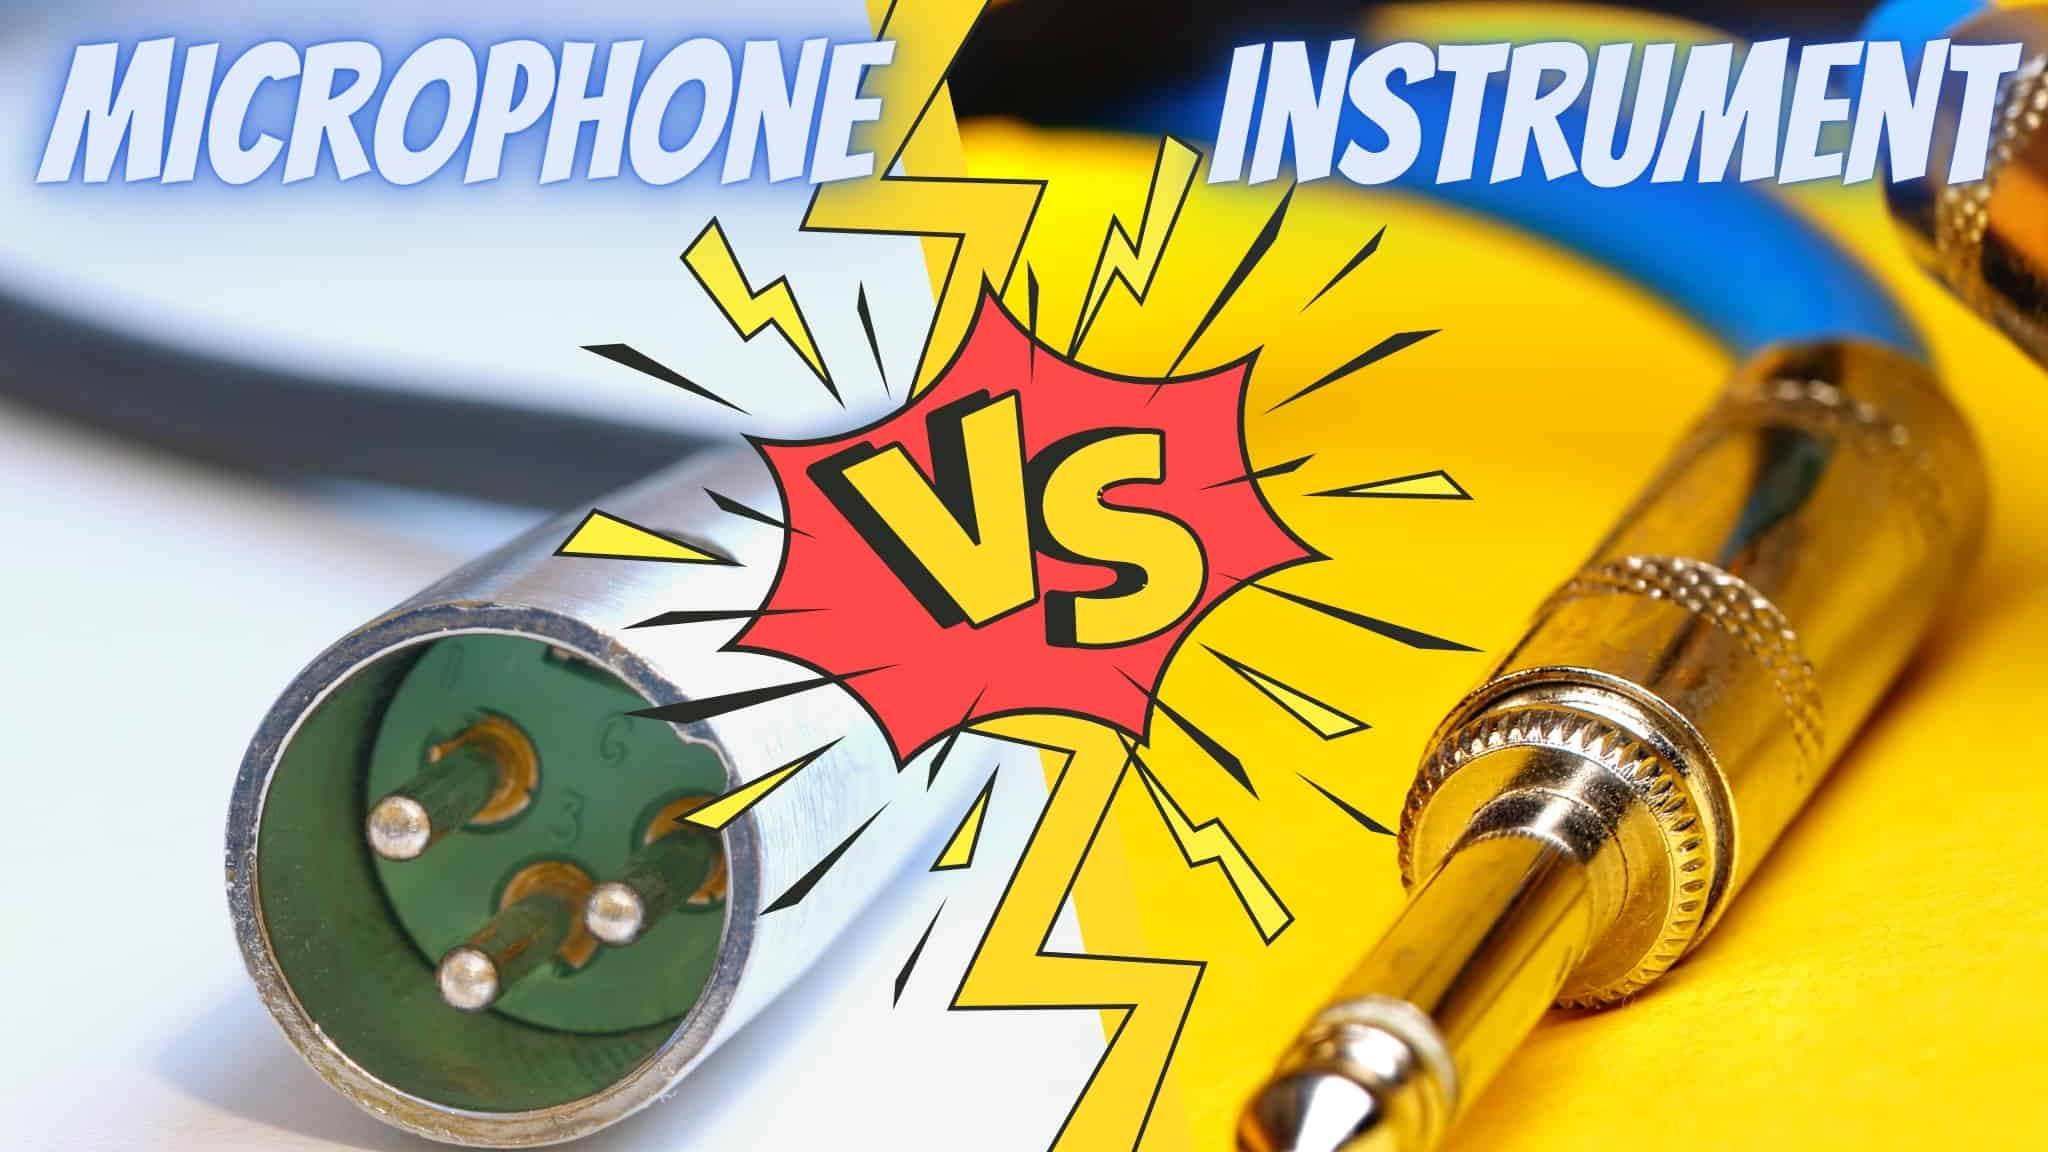 Microphone Cable vs Instrument Cable | It's All About the Level of Signal